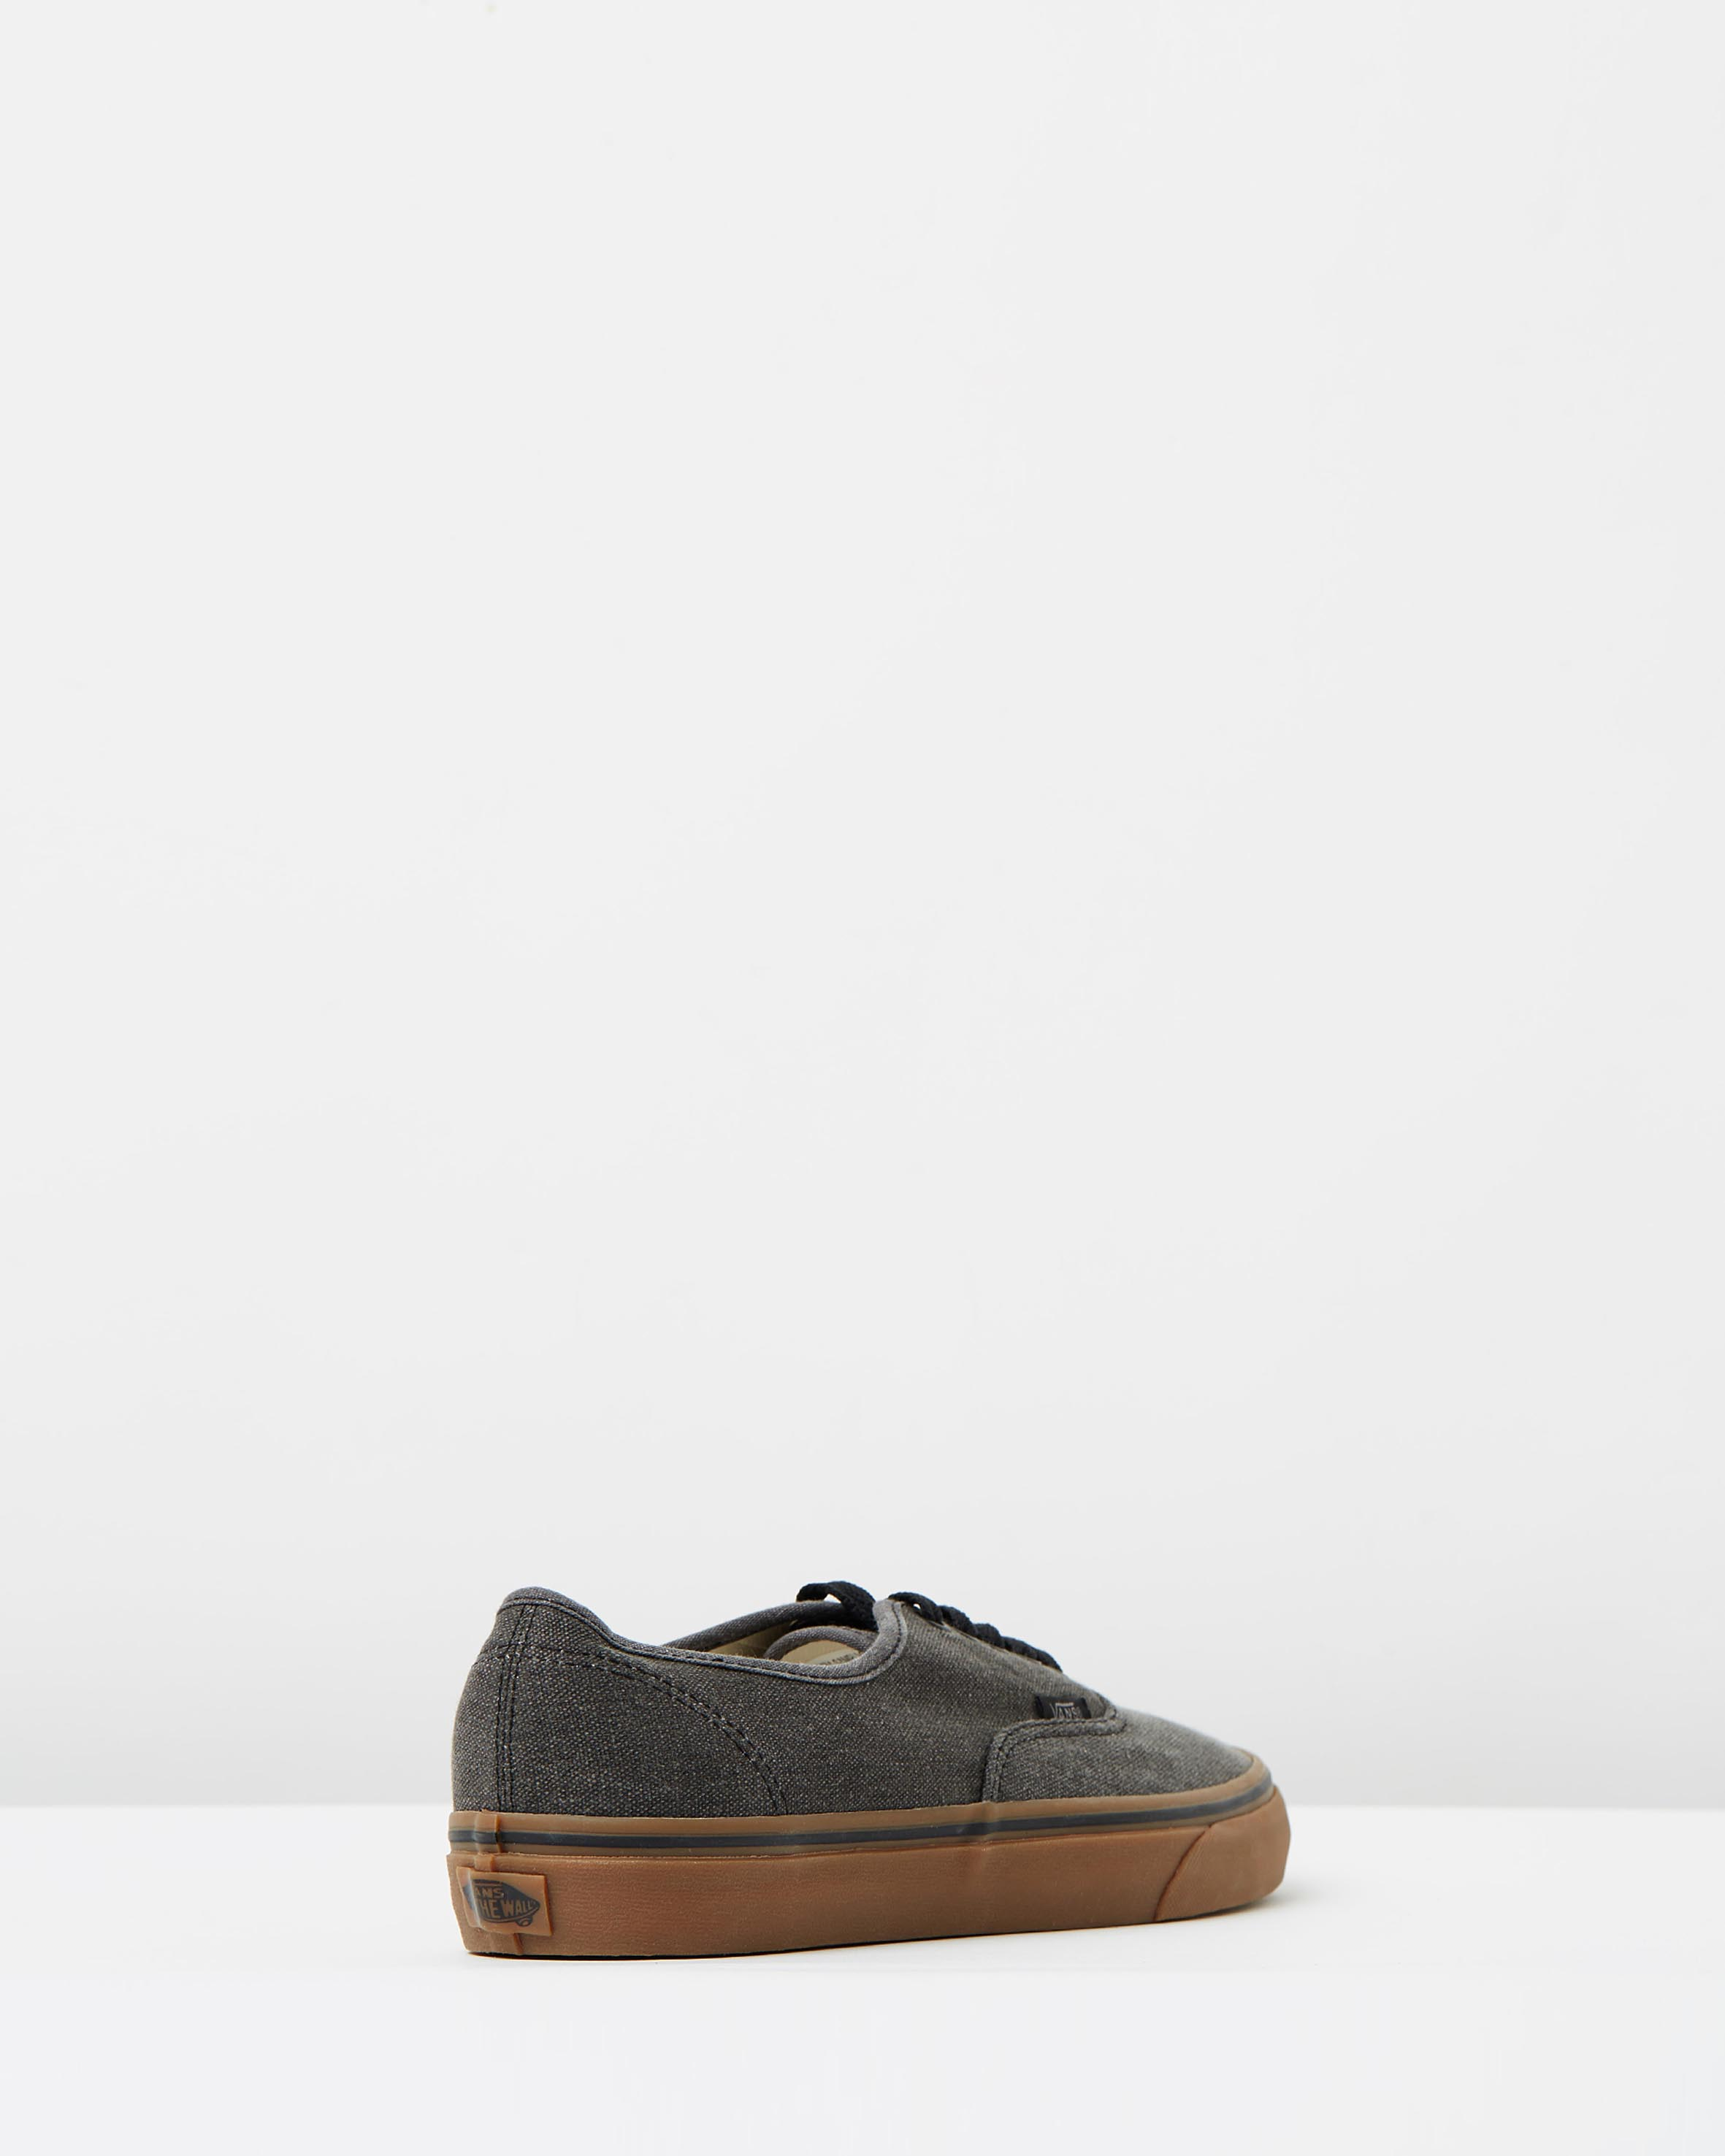 7dd07a820b ... Vans Authentic Washed Canvas Black Gum Mens Trainers 2 ...